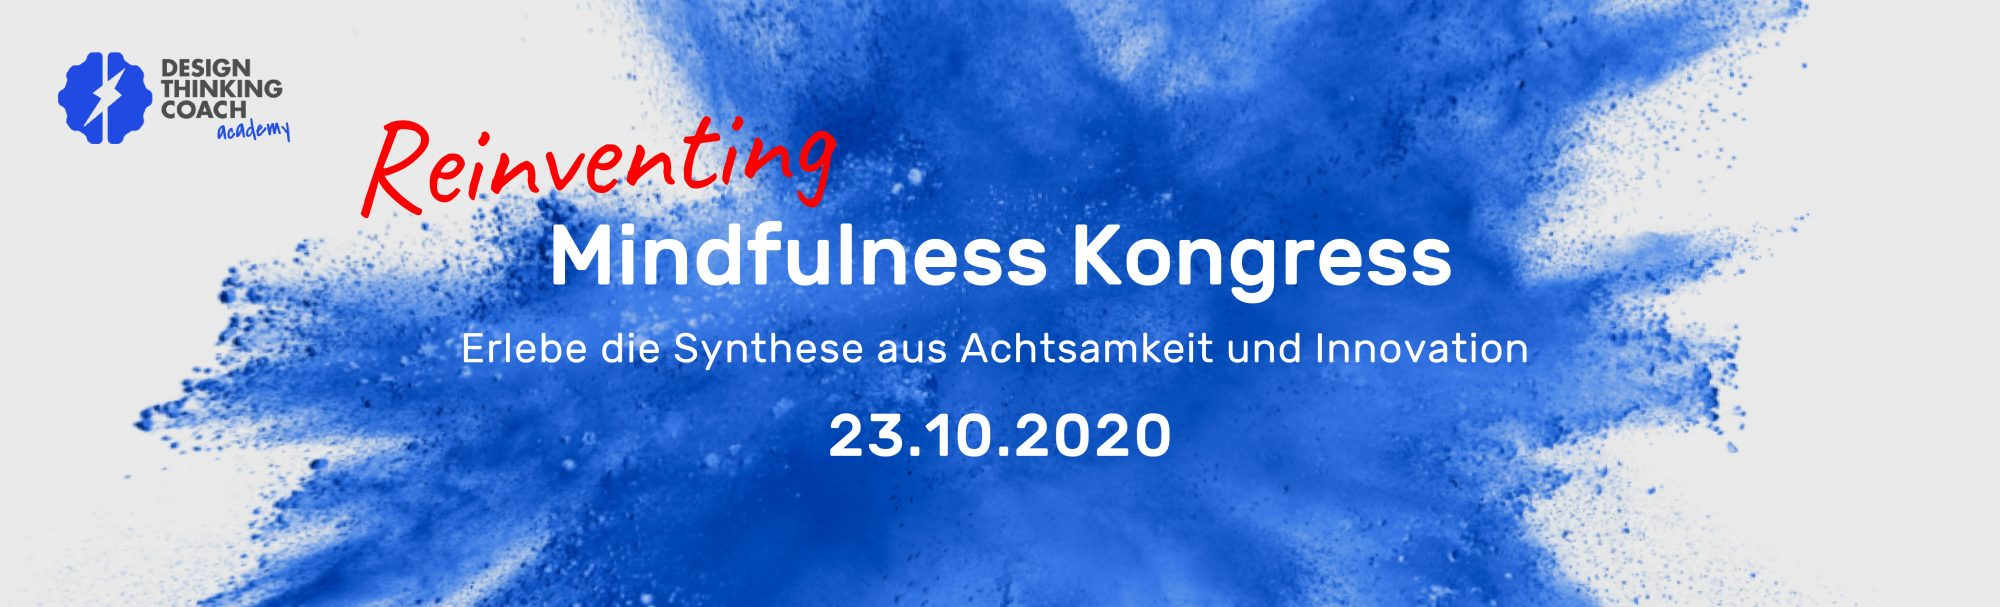 Mindfulness Kongress